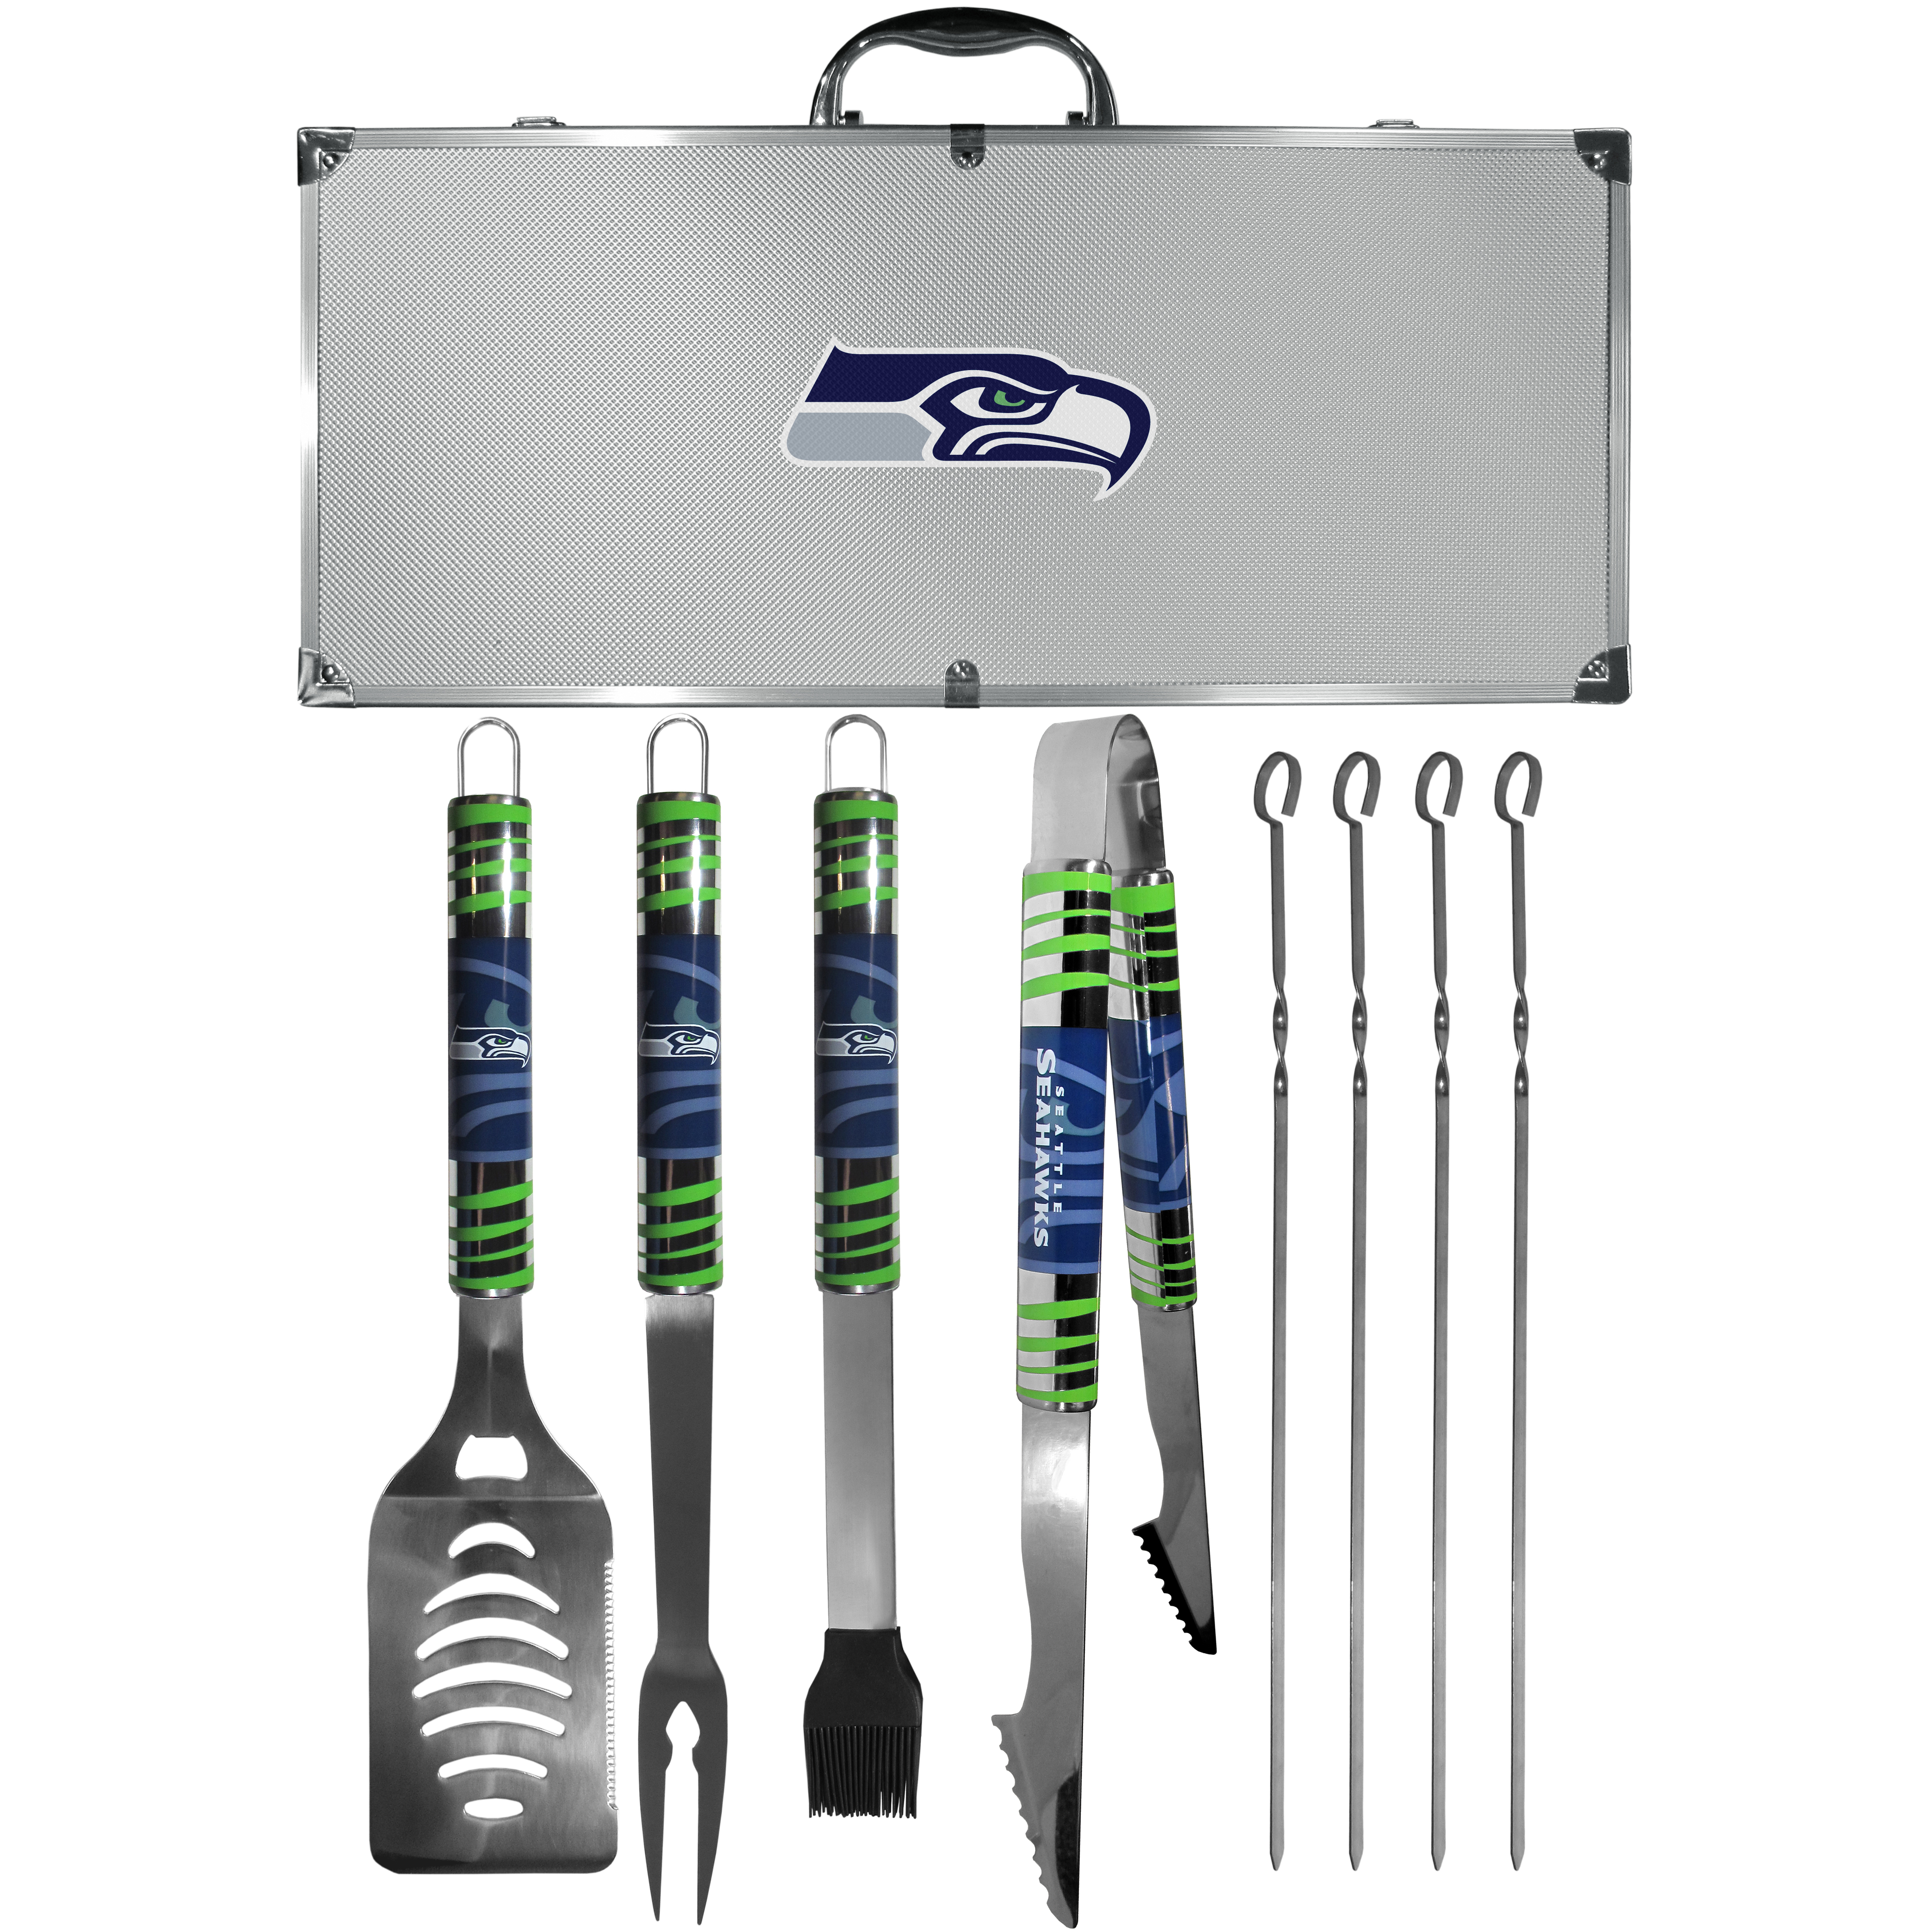 Seattle Seahawks 8 pc Tailgater BBQ Set - This is the ultimate Seattle Seahawks tailgate accessory! The high quality, 420 grade stainless steel tools are durable and well-made enough to make even the pickiest grill master smile. This complete grill accessory kit includes; 4 skewers, spatula with bottle opener and serrated knife edge, basting brush, tongs and a fork. The 18 inch metal carrying case is perfect for great outdoor use making grilling an ease while camping, tailgating or while having a game day party on your patio. The tools are 17 inches long and feature vivid team graphics. The metal case features a large team emblem with exceptional detail. This high-end men's gift is sure to be a hit as a present on Father's Day or Christmas.